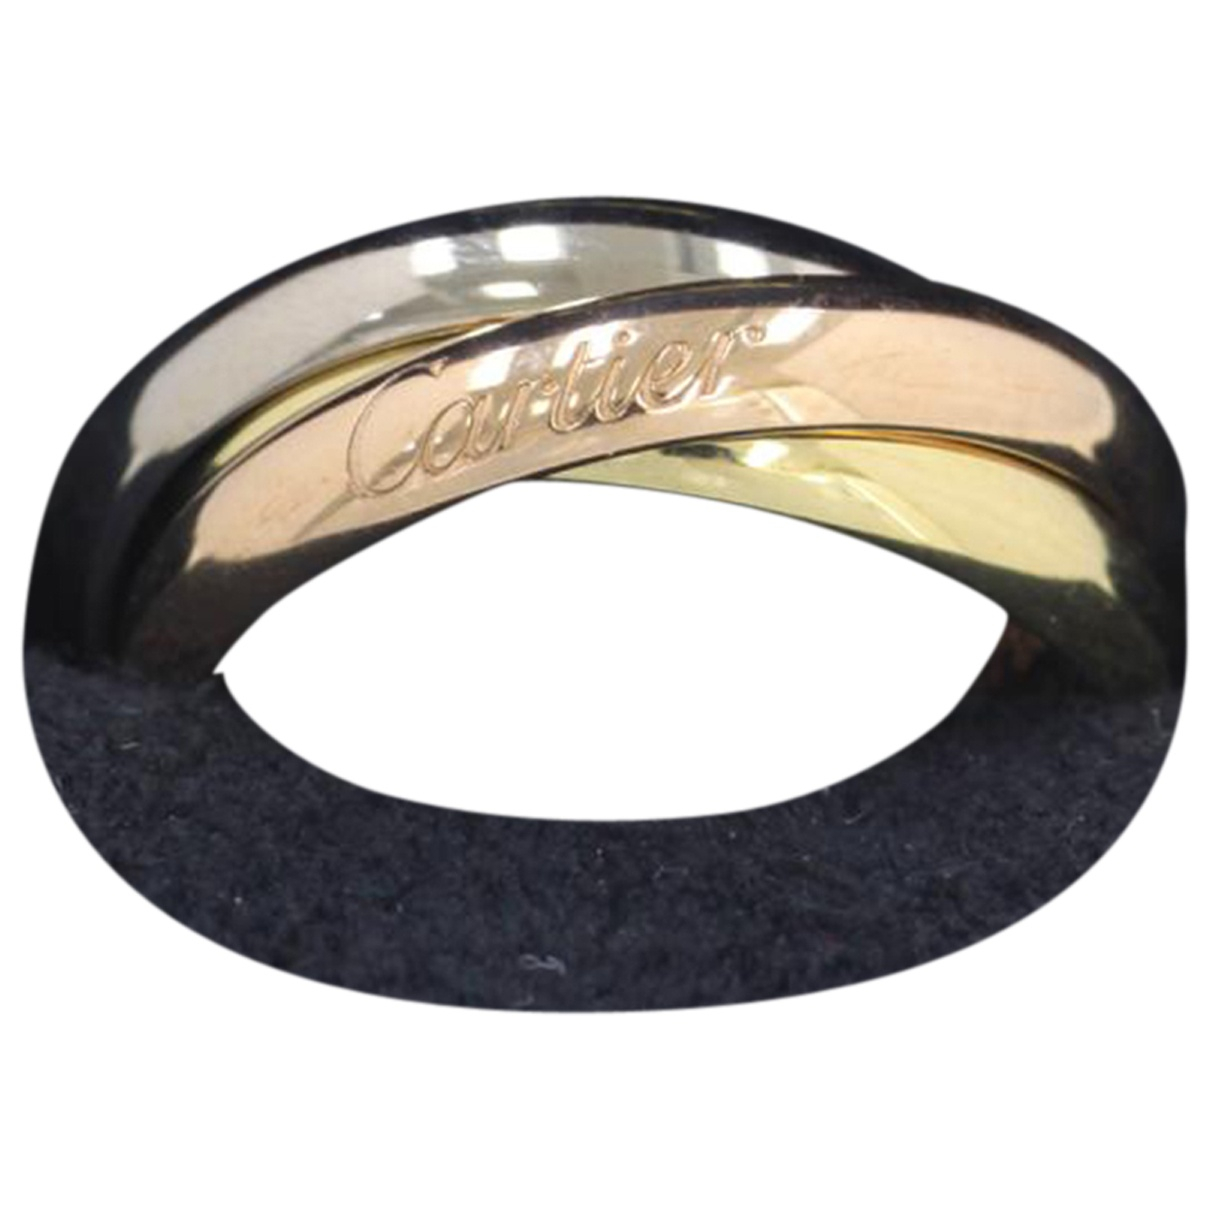 Cartier N ring for Women 55 EU